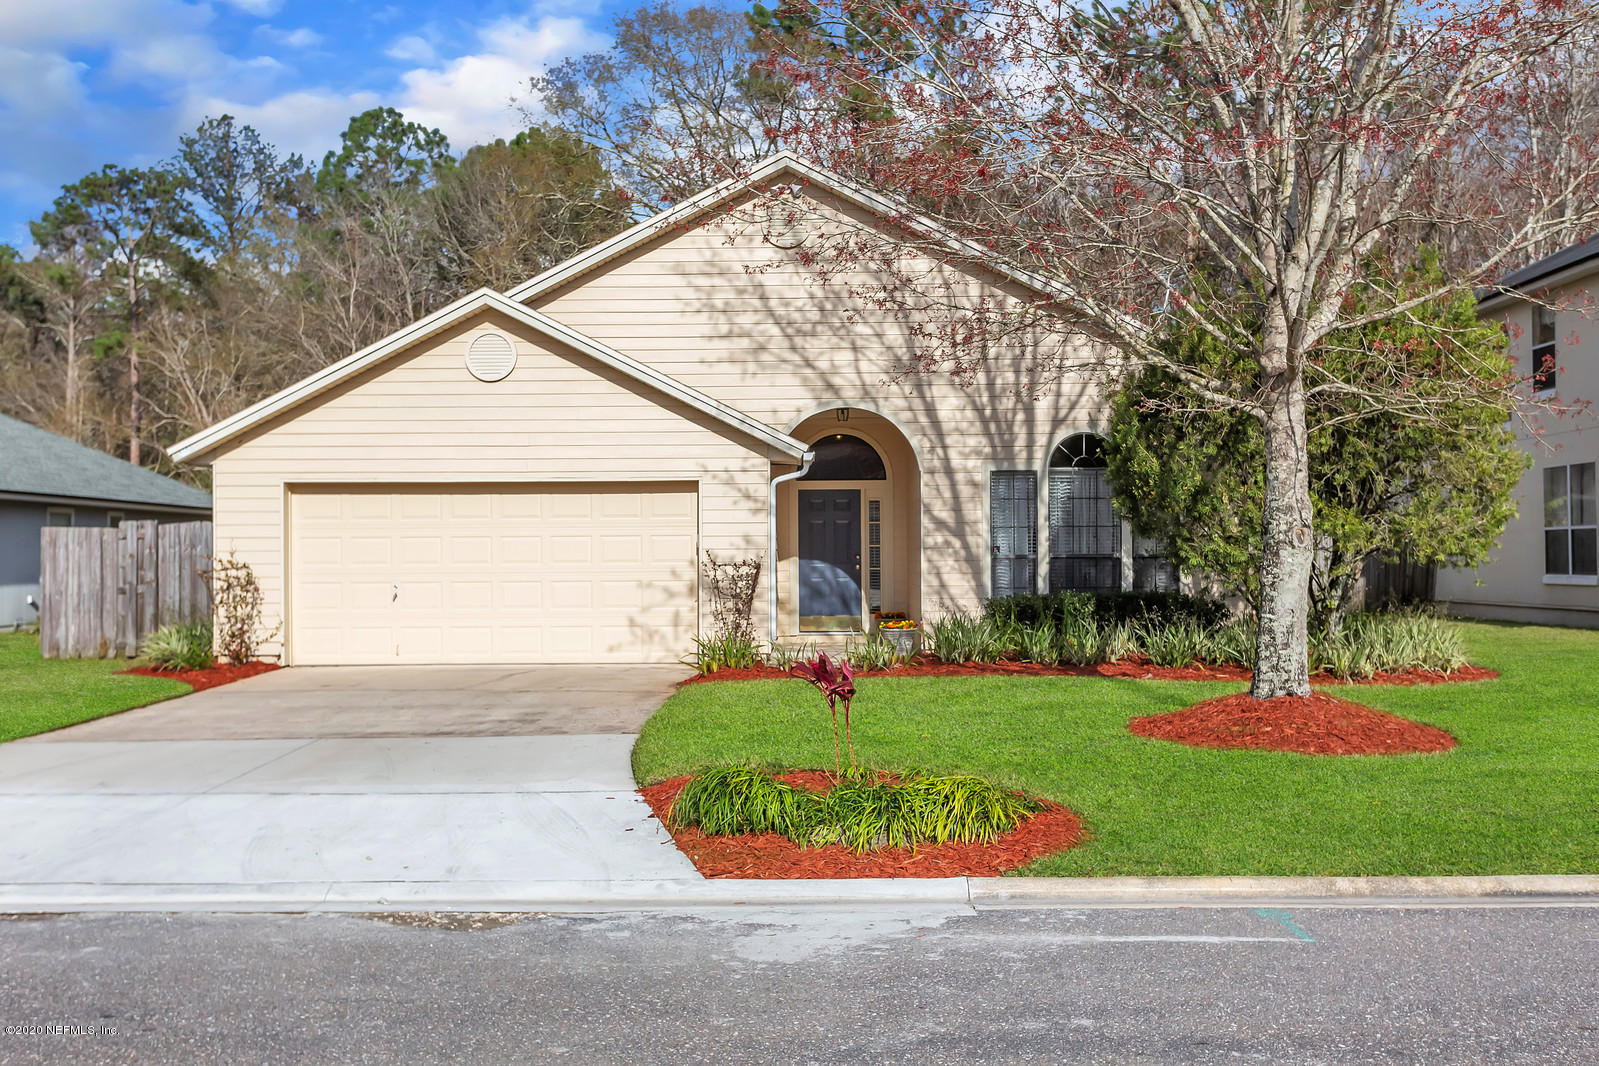 219 DOVER BLUFF, ORANGE PARK, FLORIDA 32073, 3 Bedrooms Bedrooms, ,2 BathroomsBathrooms,Residential,For sale,DOVER BLUFF,1038454